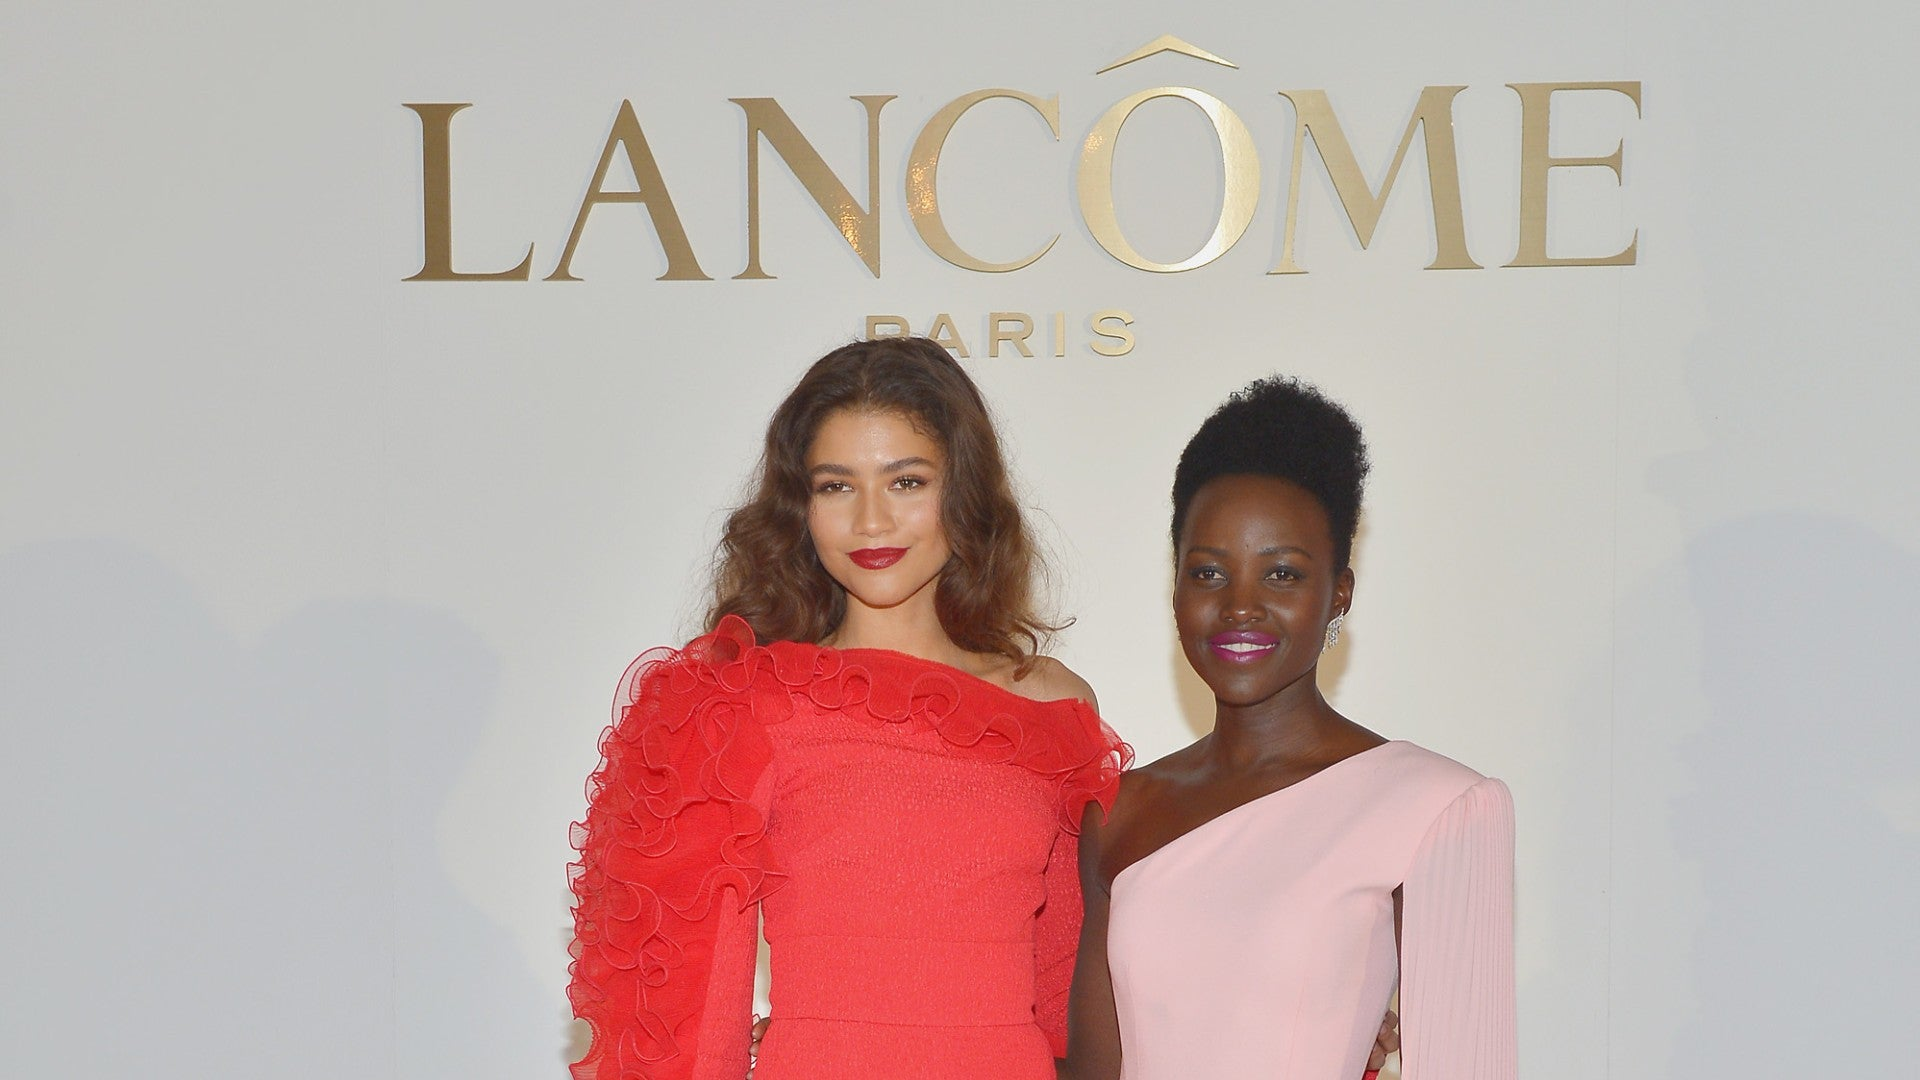 Lancôme Ad Featuring Zendaya and Lupita Just Won The Decade